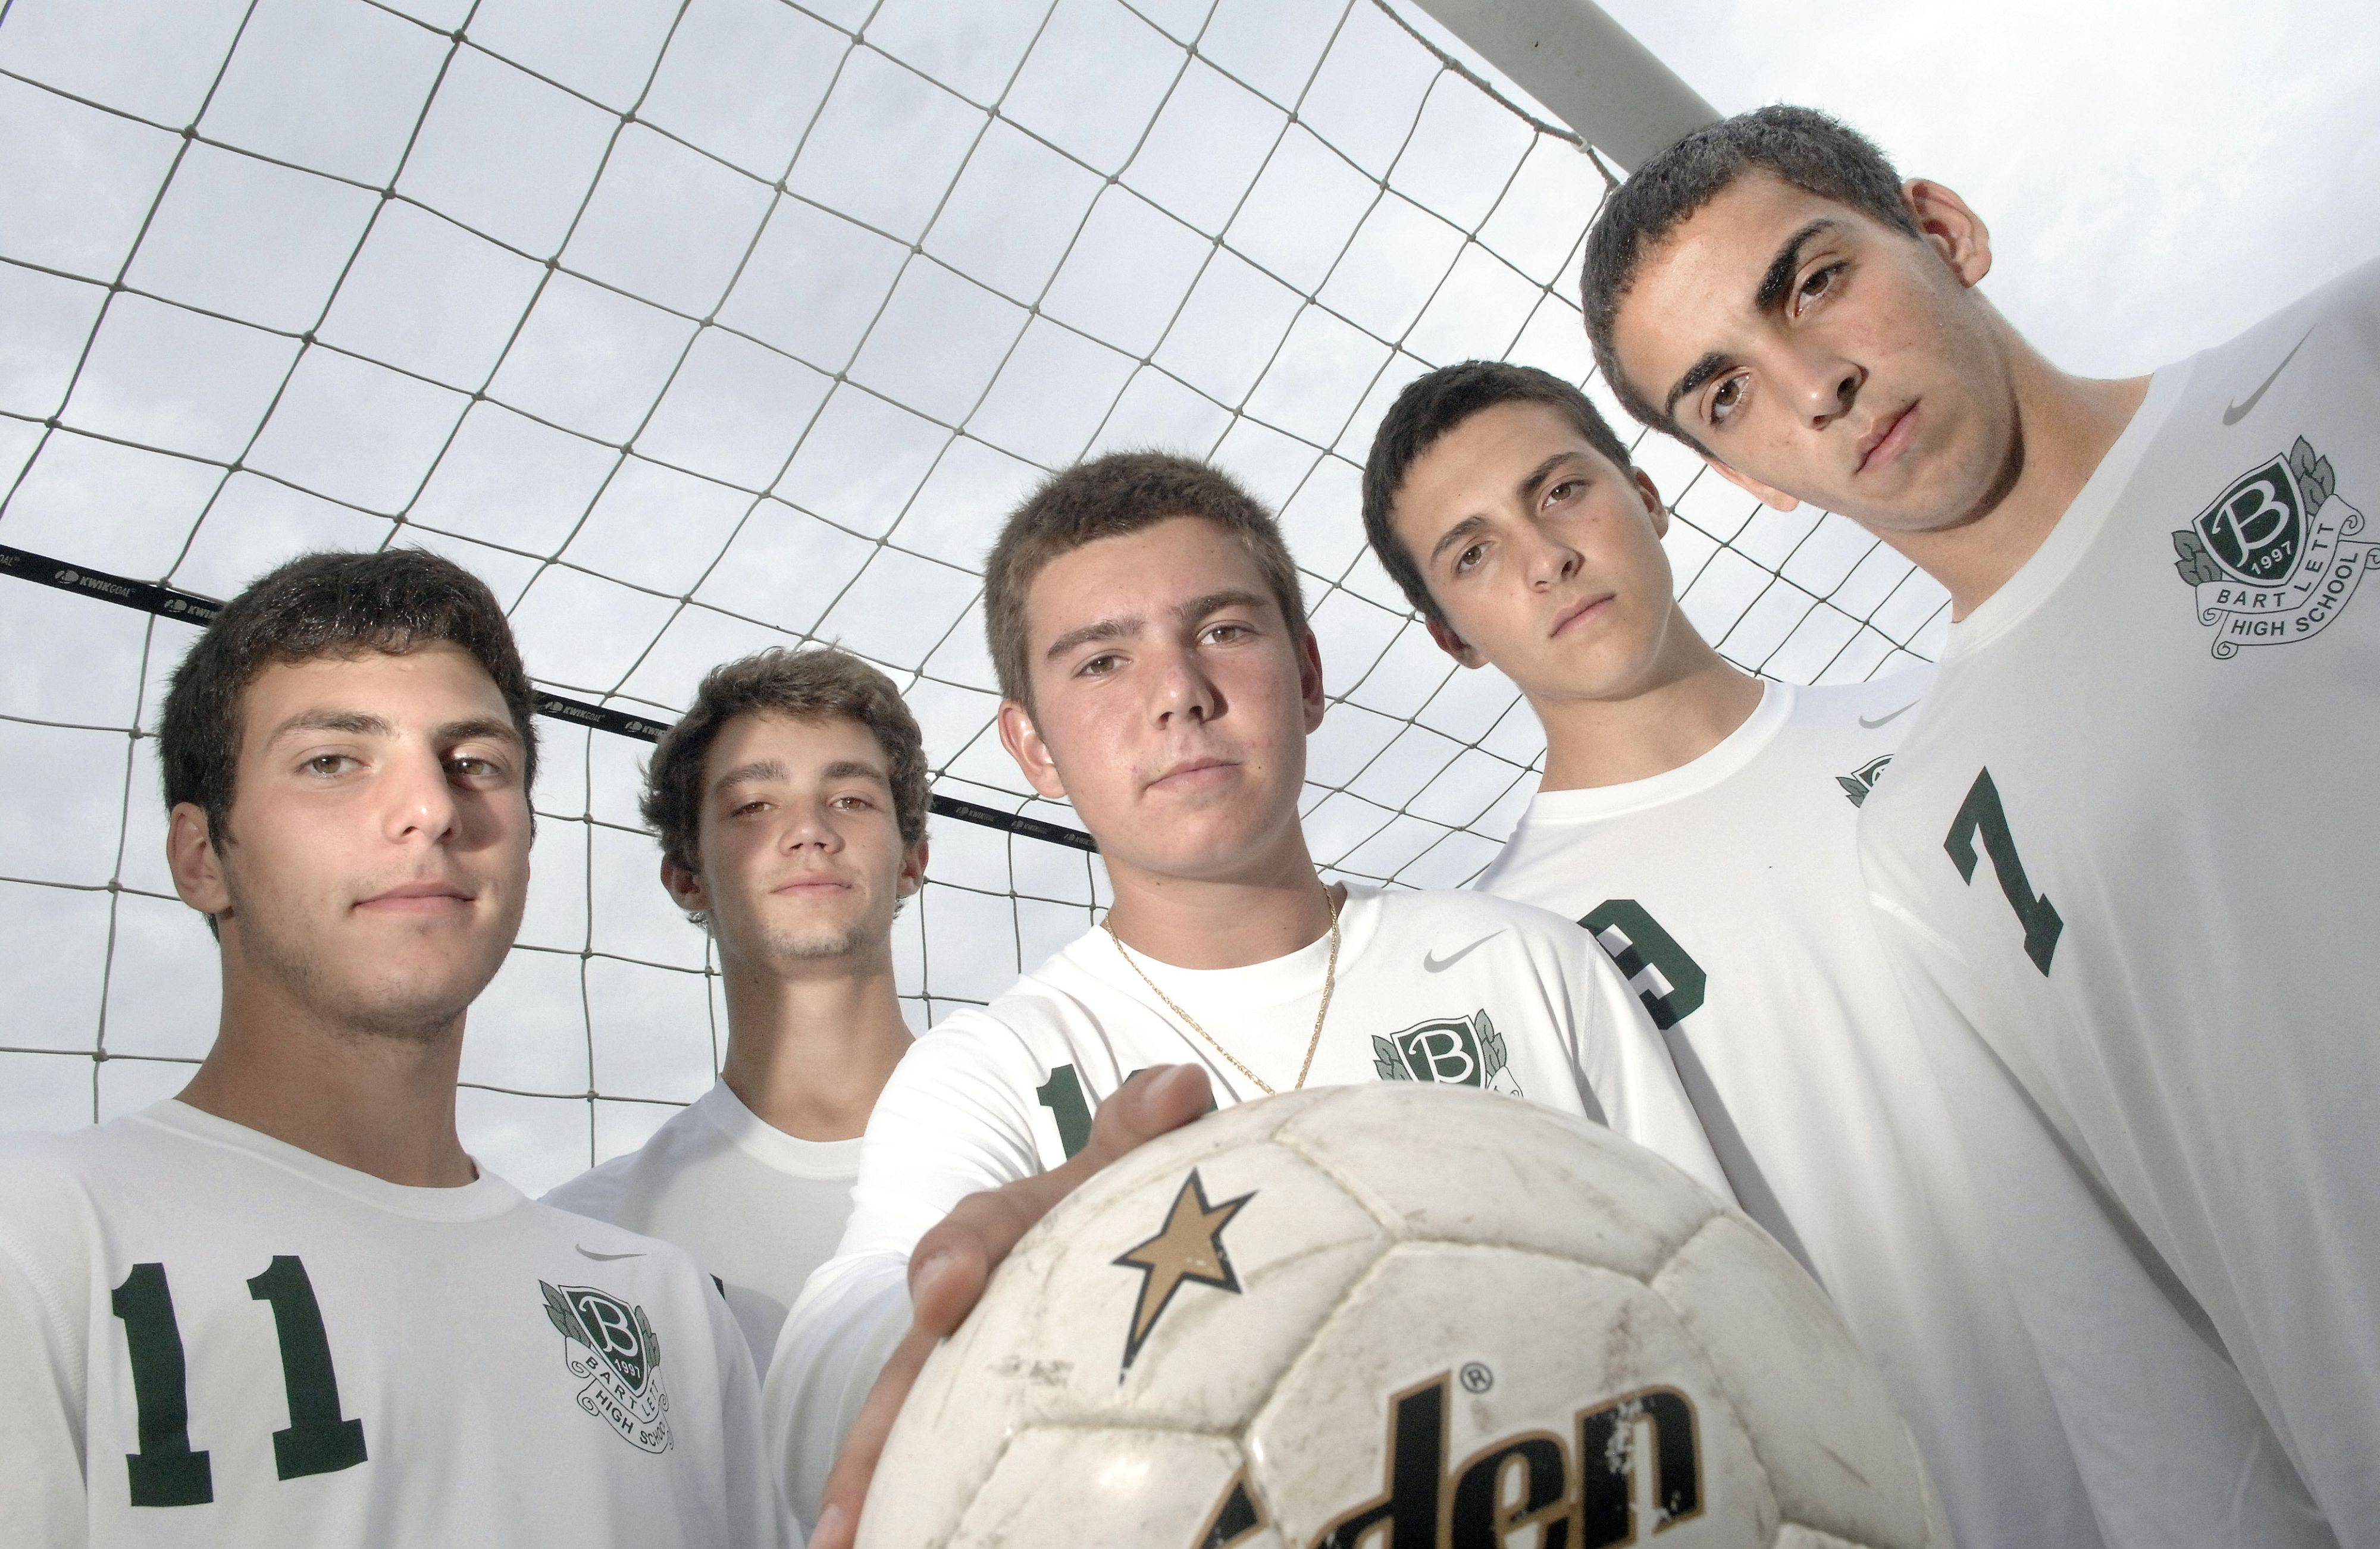 Bartlett varsity varsity soccer players, front row from left, Charlie Sordini, Anthony DiNuzzo, Fabio Aiello. Back row from left, Joey Morgan and Tyler Lake. All are seniors and hope to lead the Hawks to their best season ever.